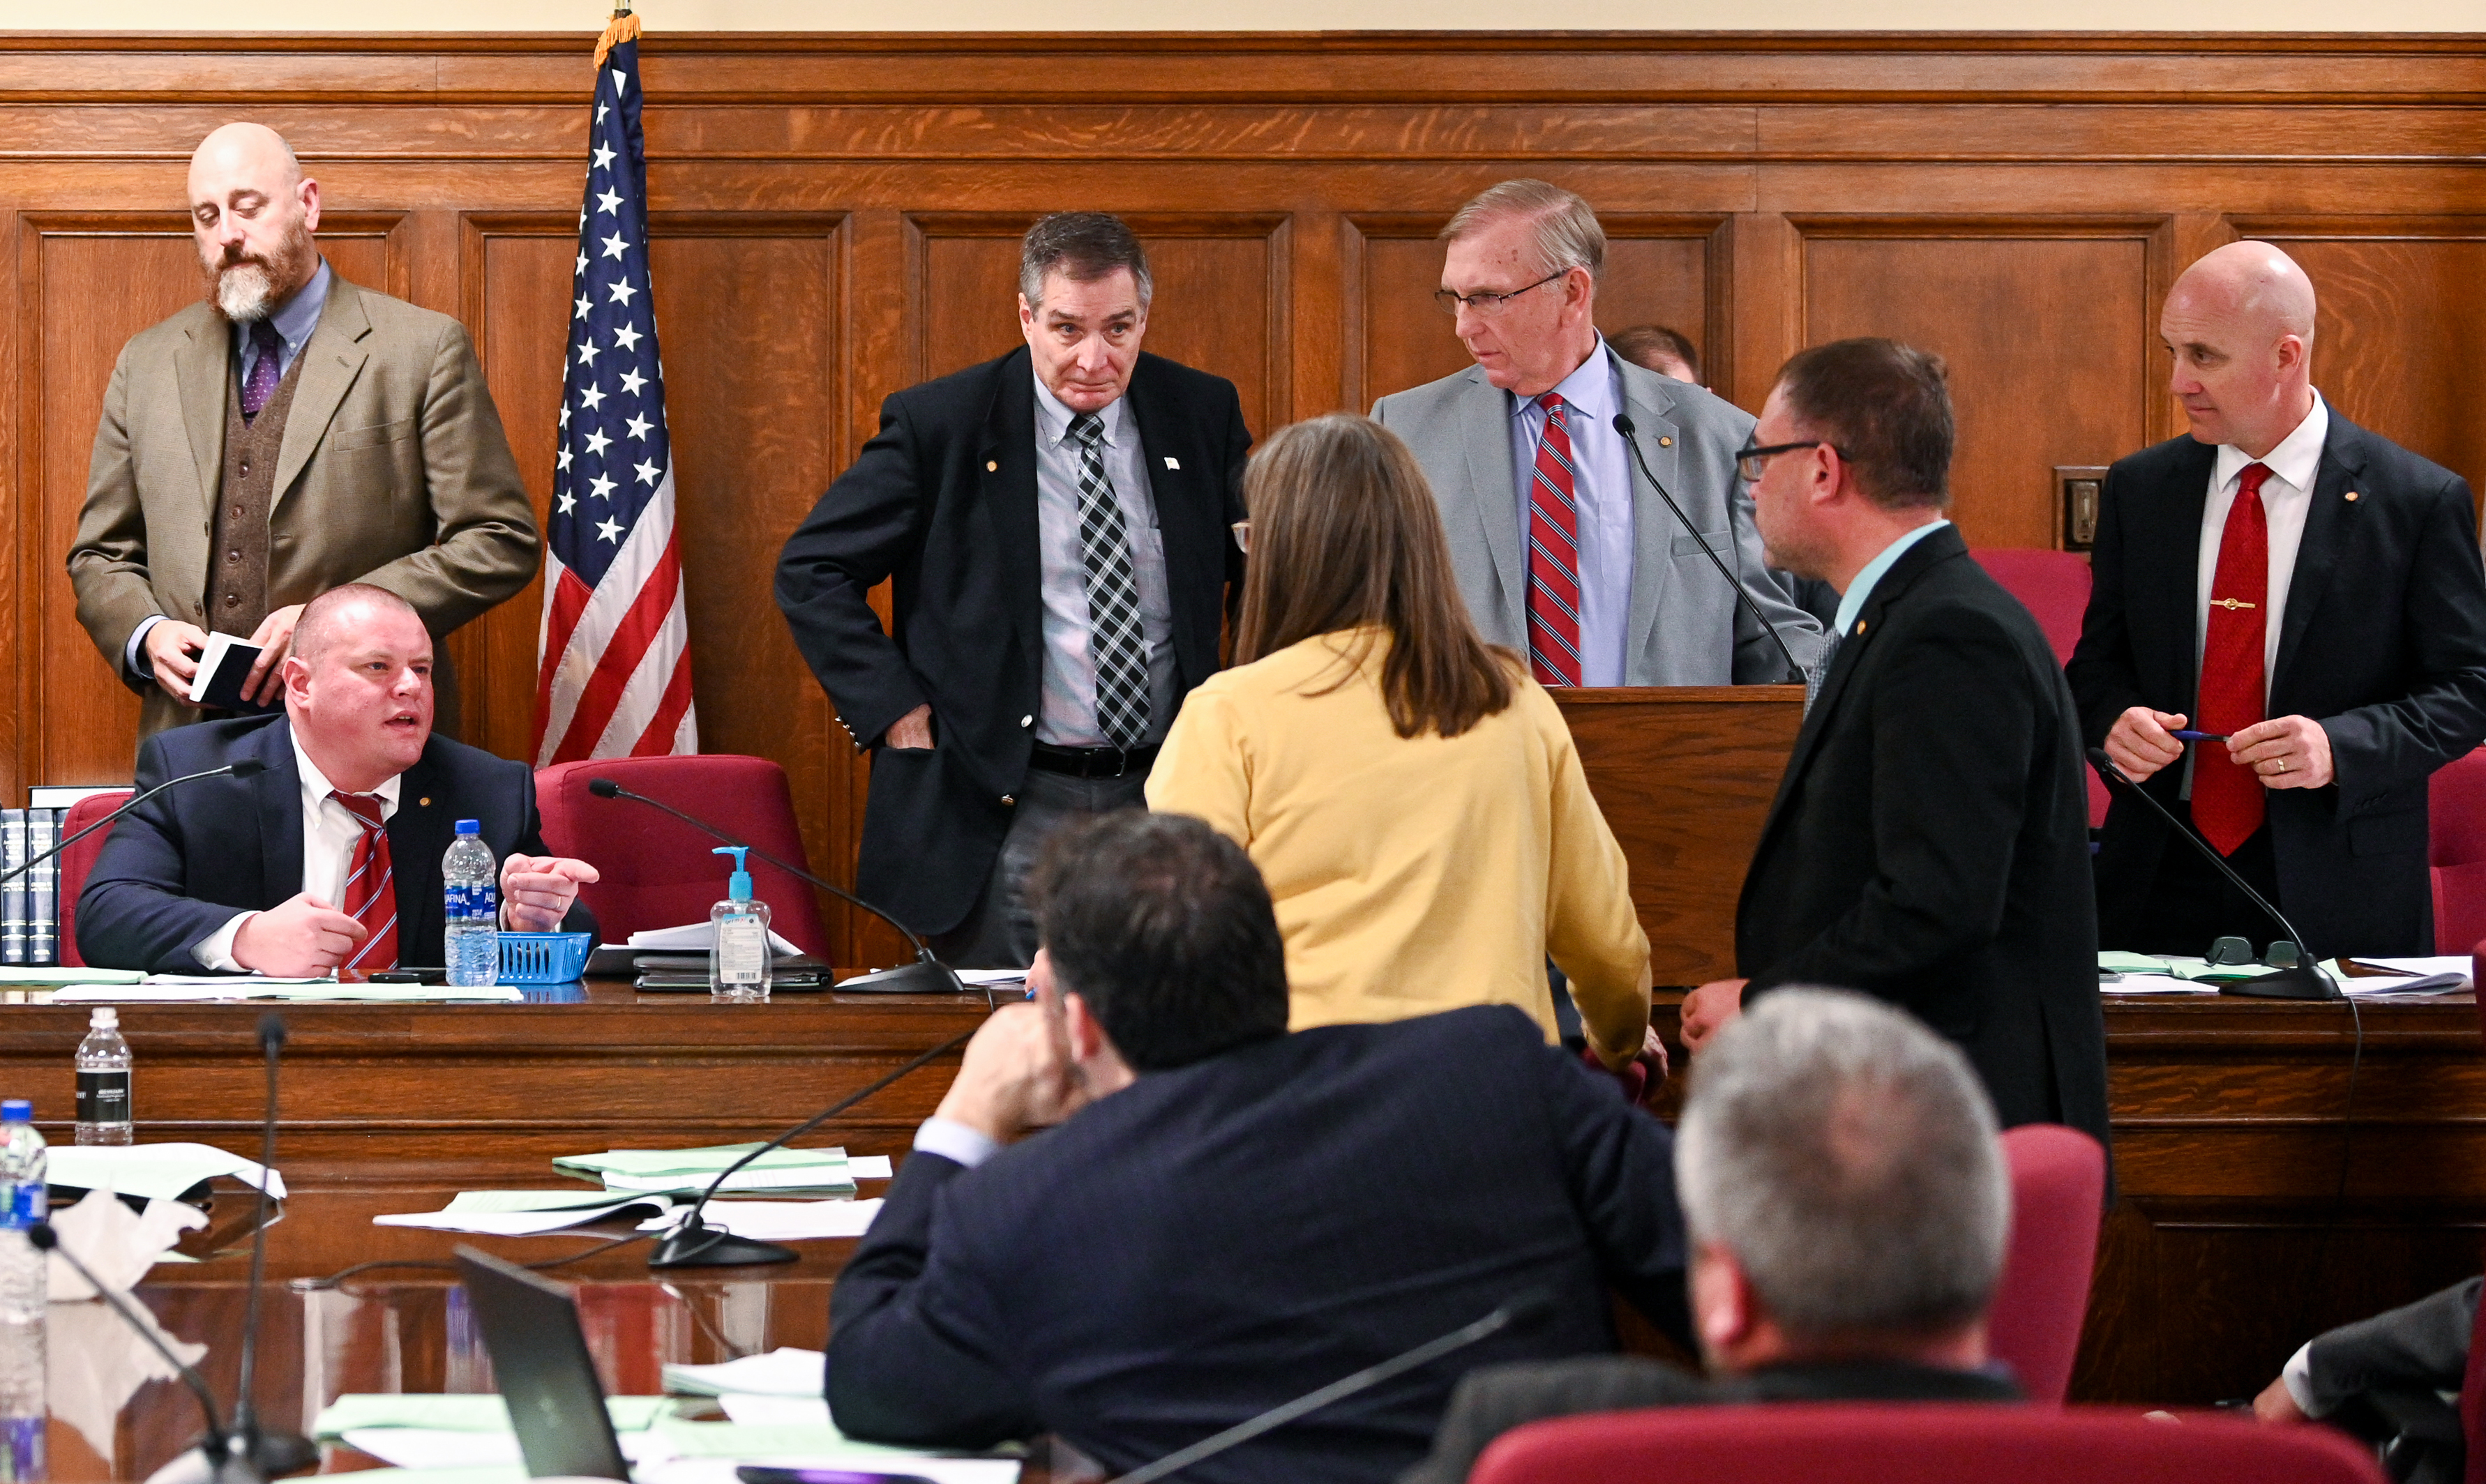 Bills approved in chaotic committee meeting | News, Sports, Jobs ...